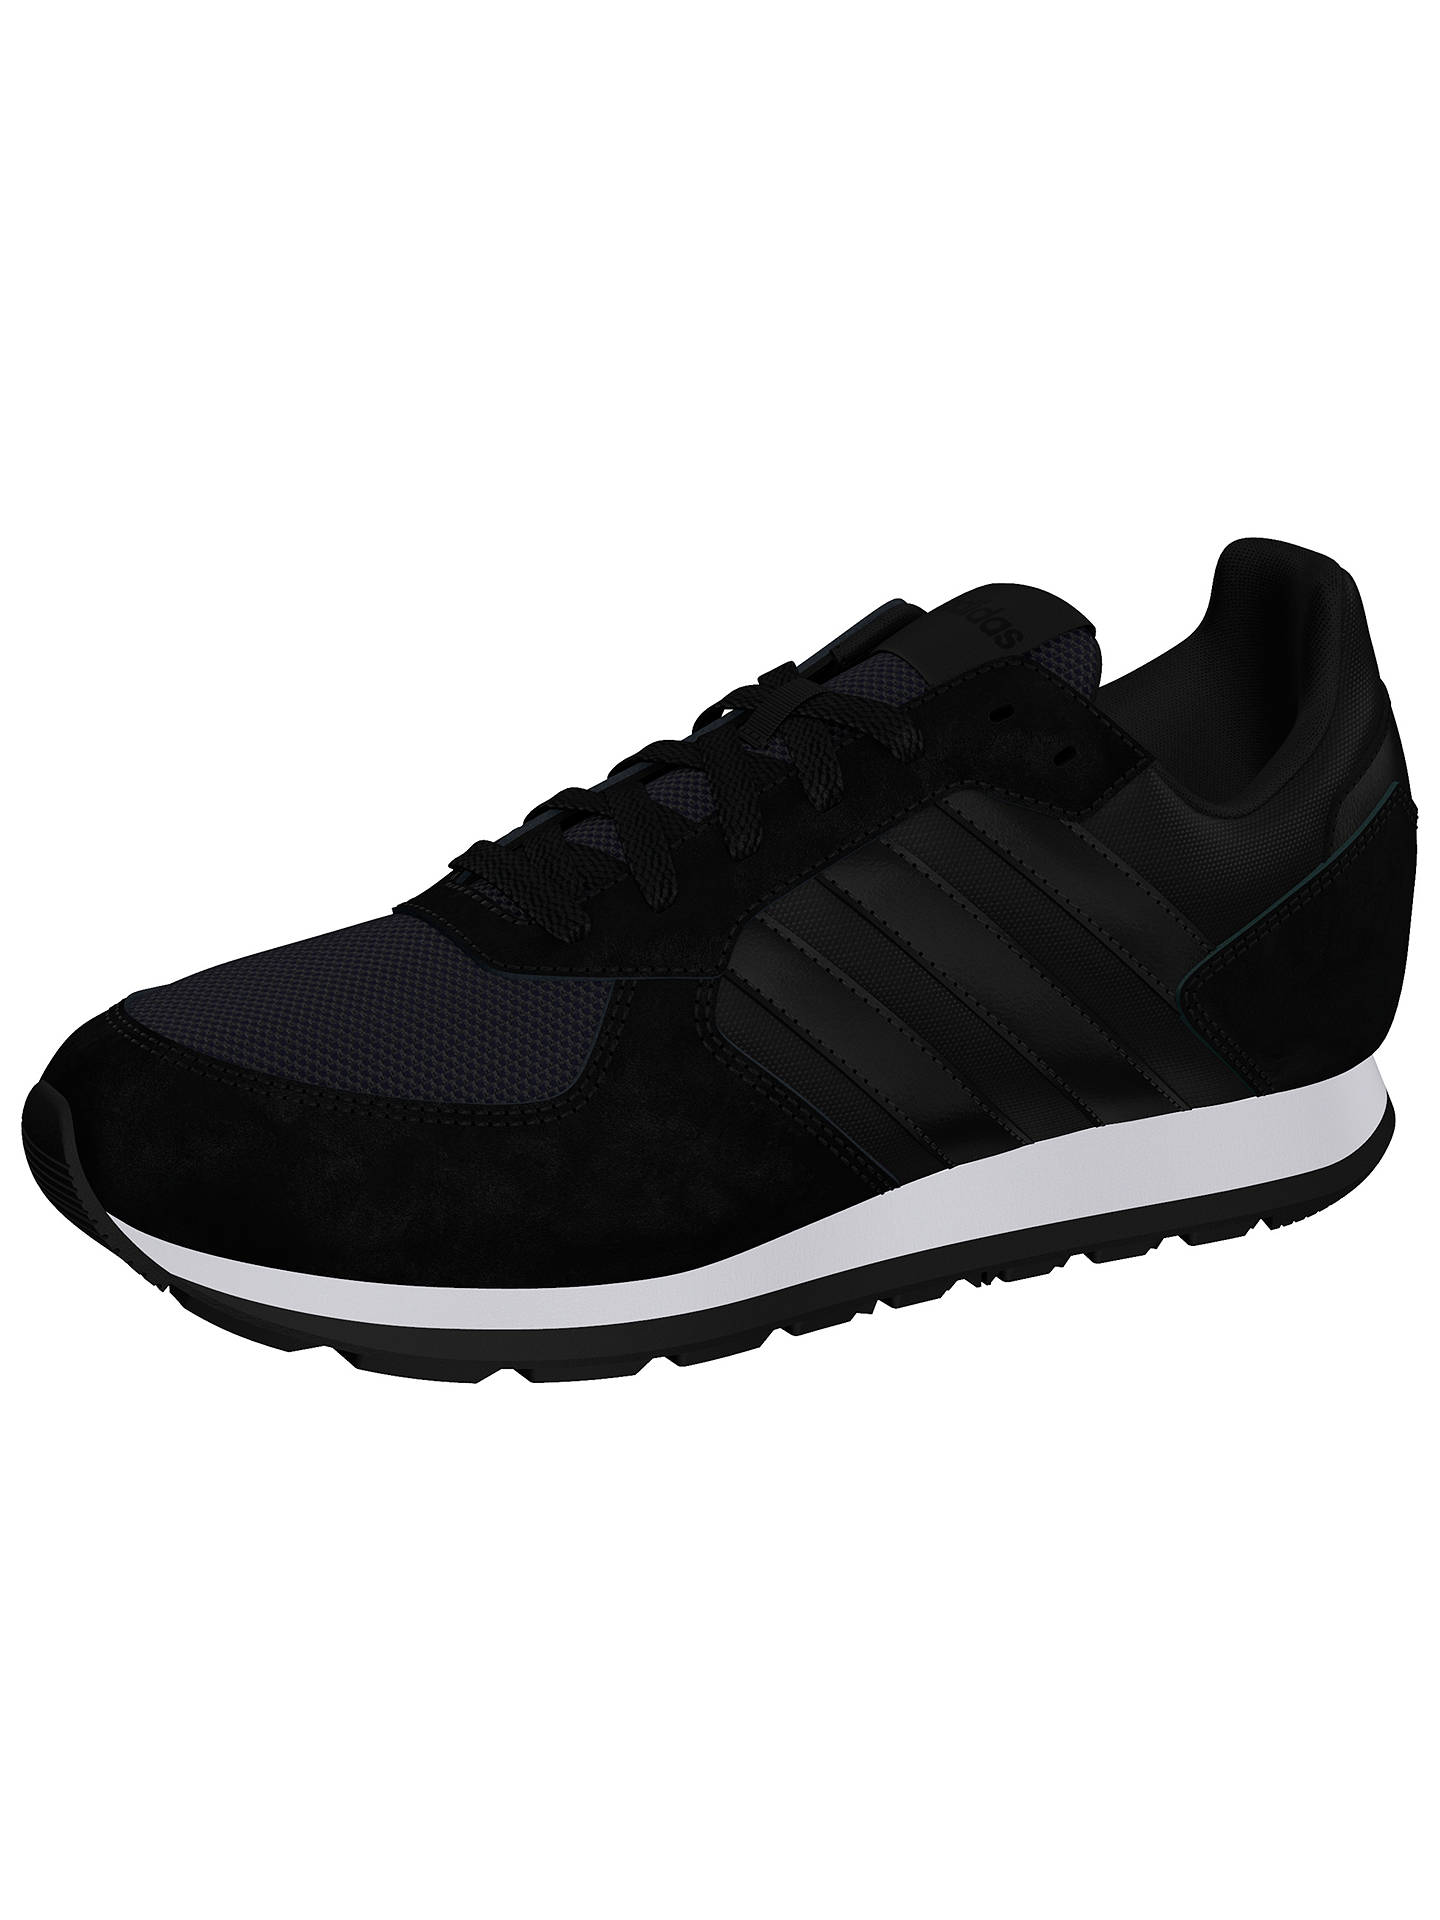 Buyadidas 8K Women's Trainers, Black, 4 Online at johnlewis.com